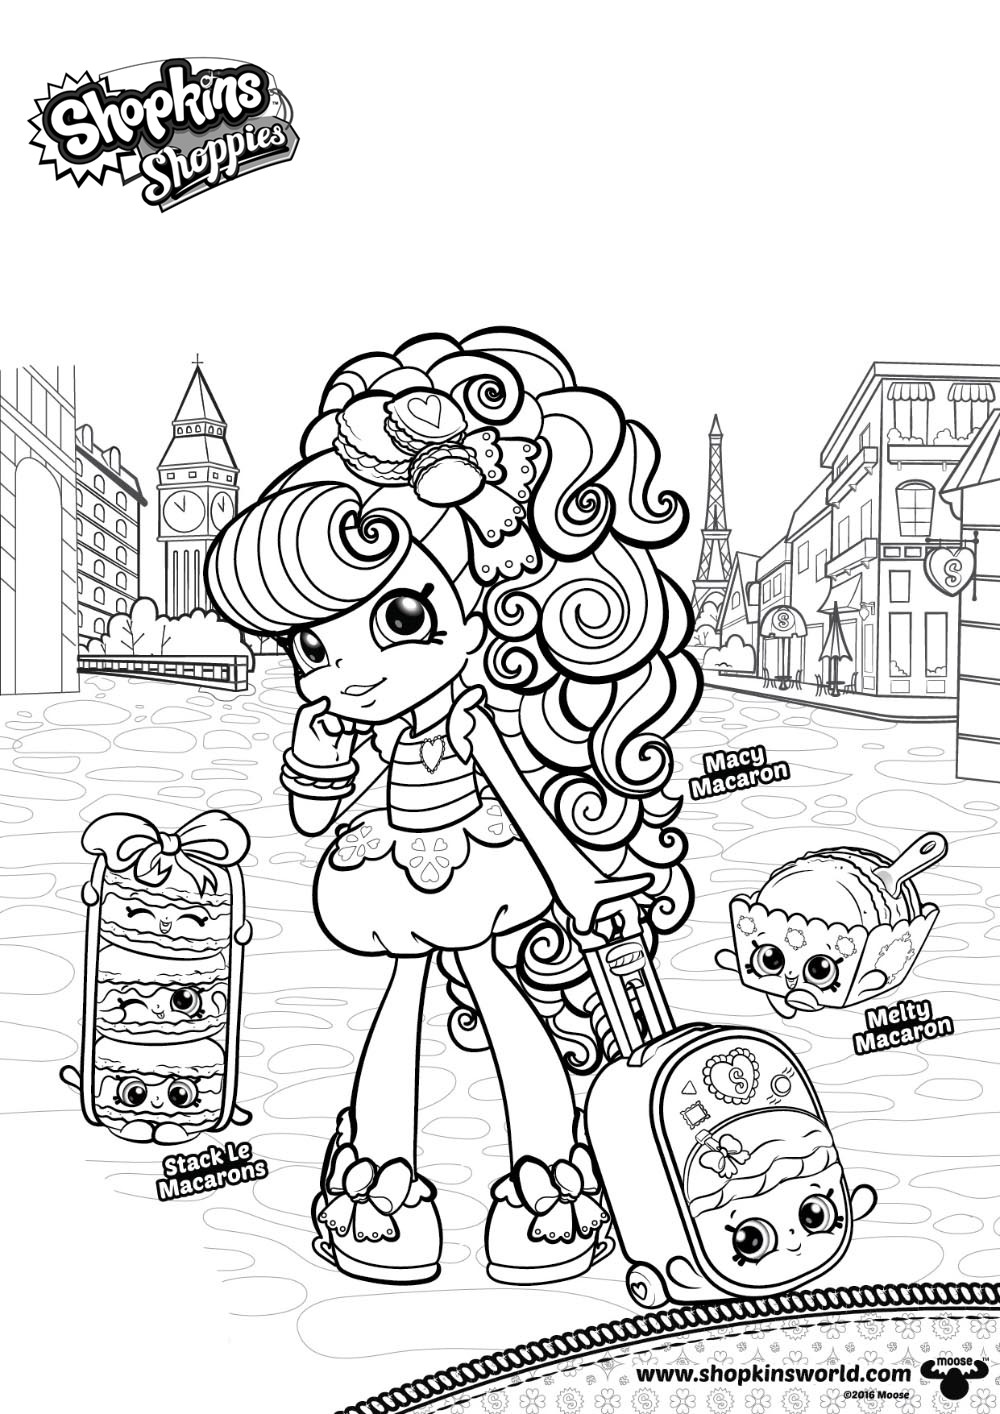 Shoppies Coloring Pages Shopkins Macy Macaron Free Printable